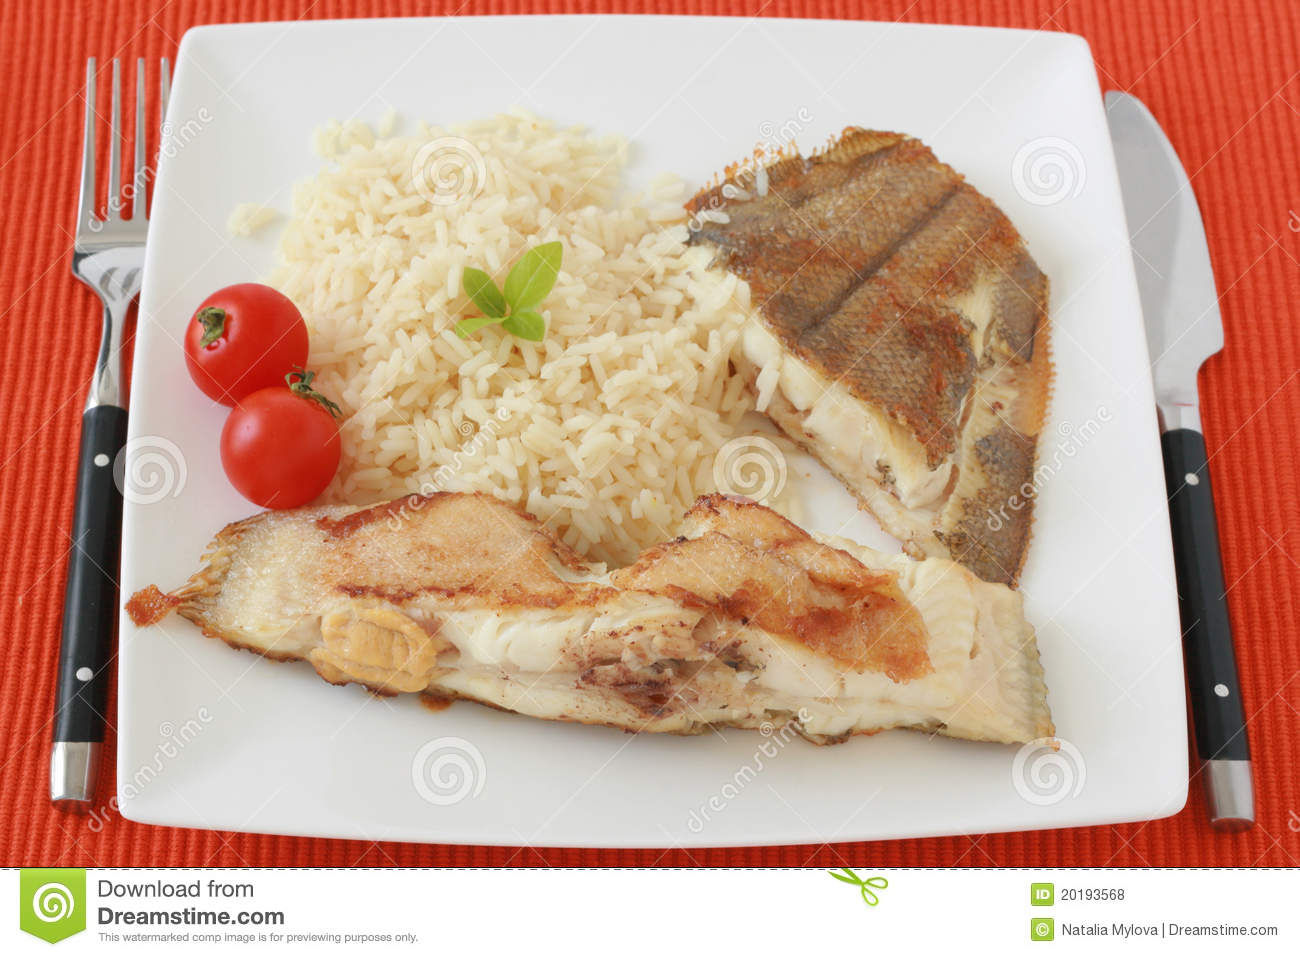 Royalty Free Stock Photos: Fried flounder with boiled rice